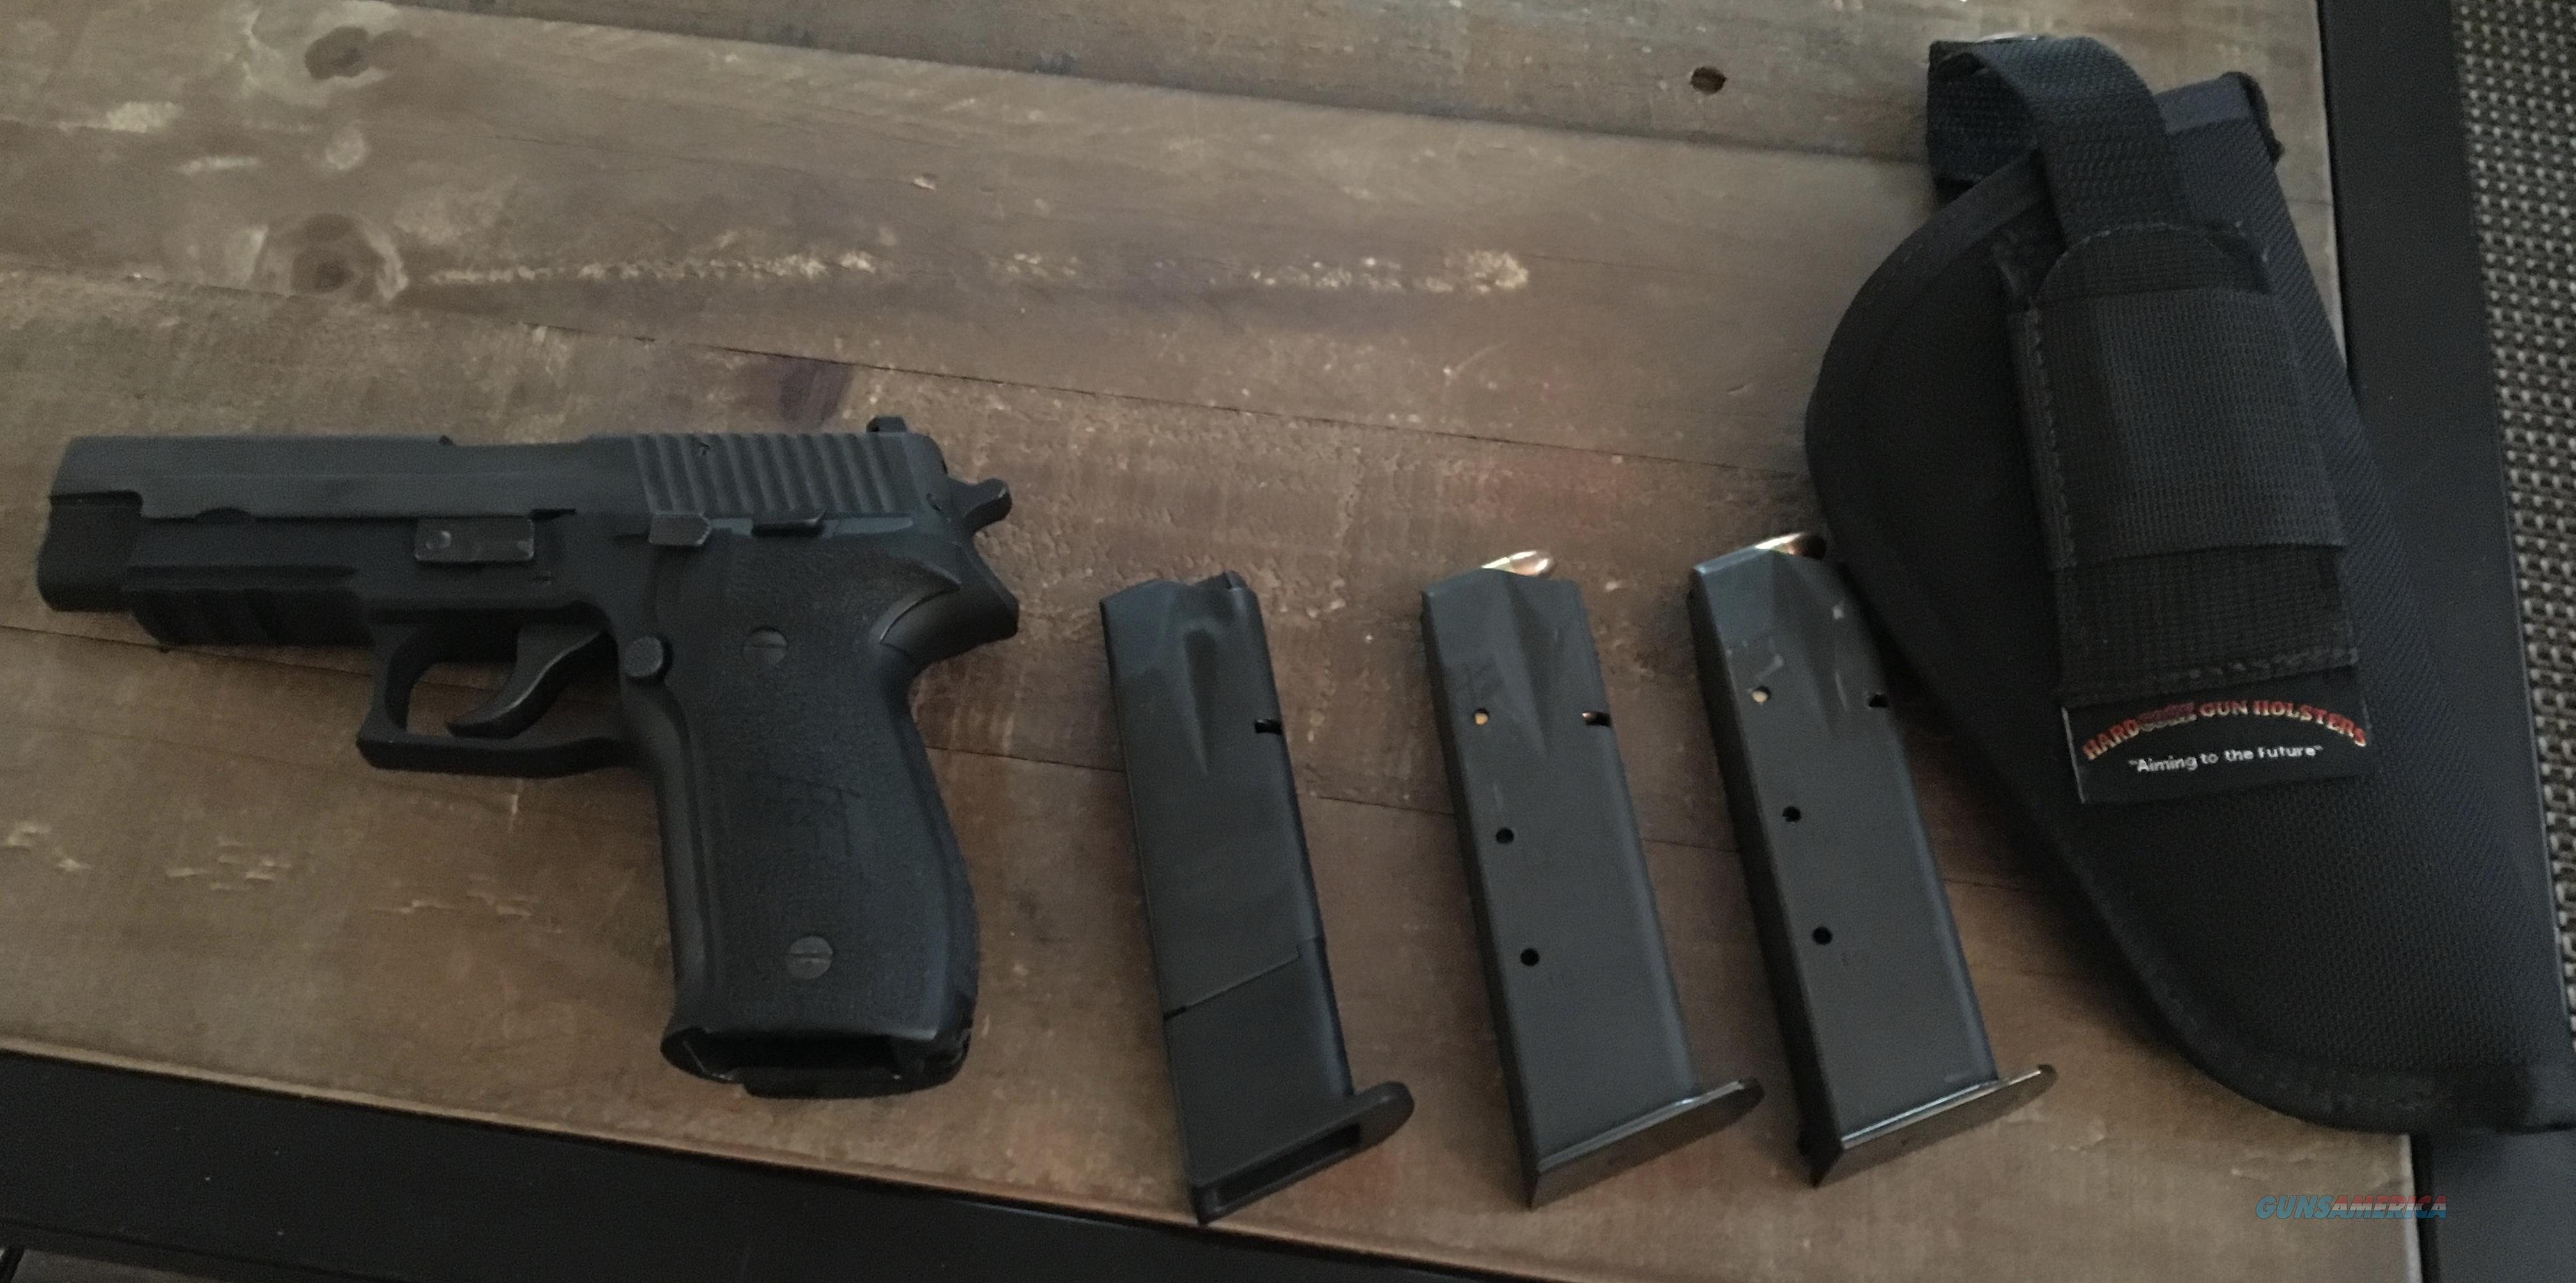 Sig Sauer P226 9mm automatic with 3 magazines and a holster  Guns > Pistols > Sig - Sauer/Sigarms Pistols > Other